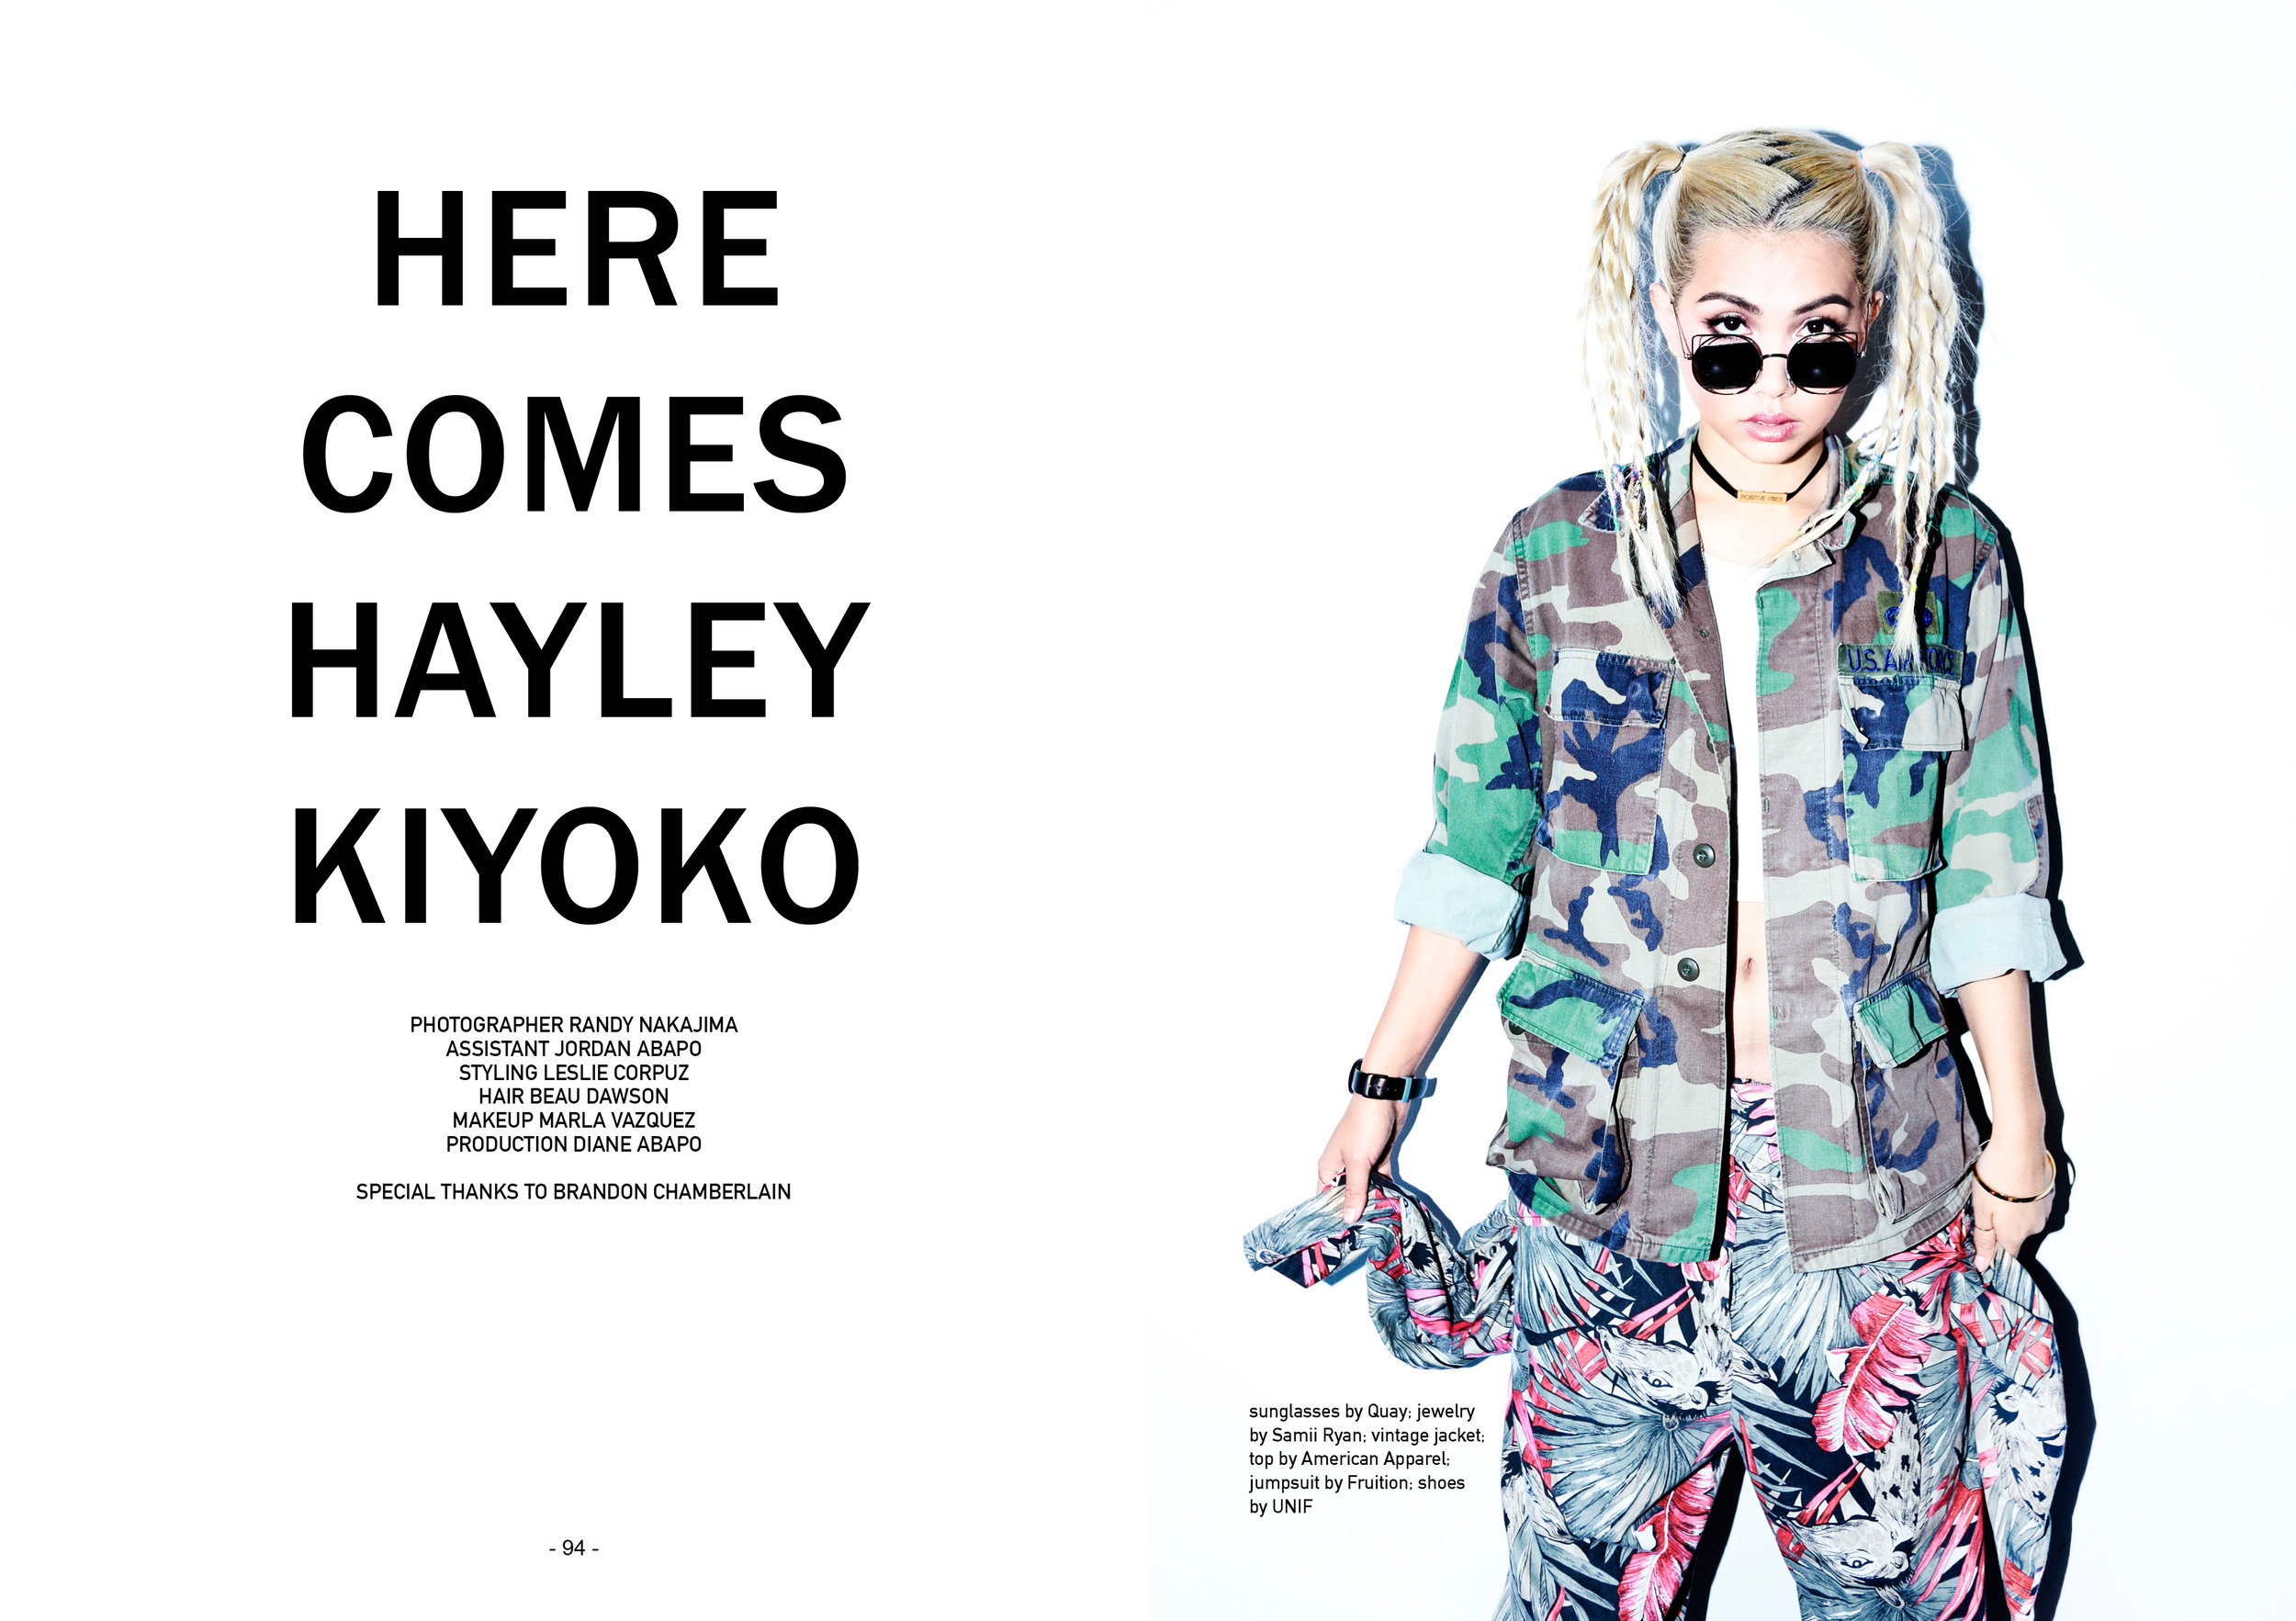 Hayley Kiyoko on the cover of SUSPEND Magazine, ISSUE 05.